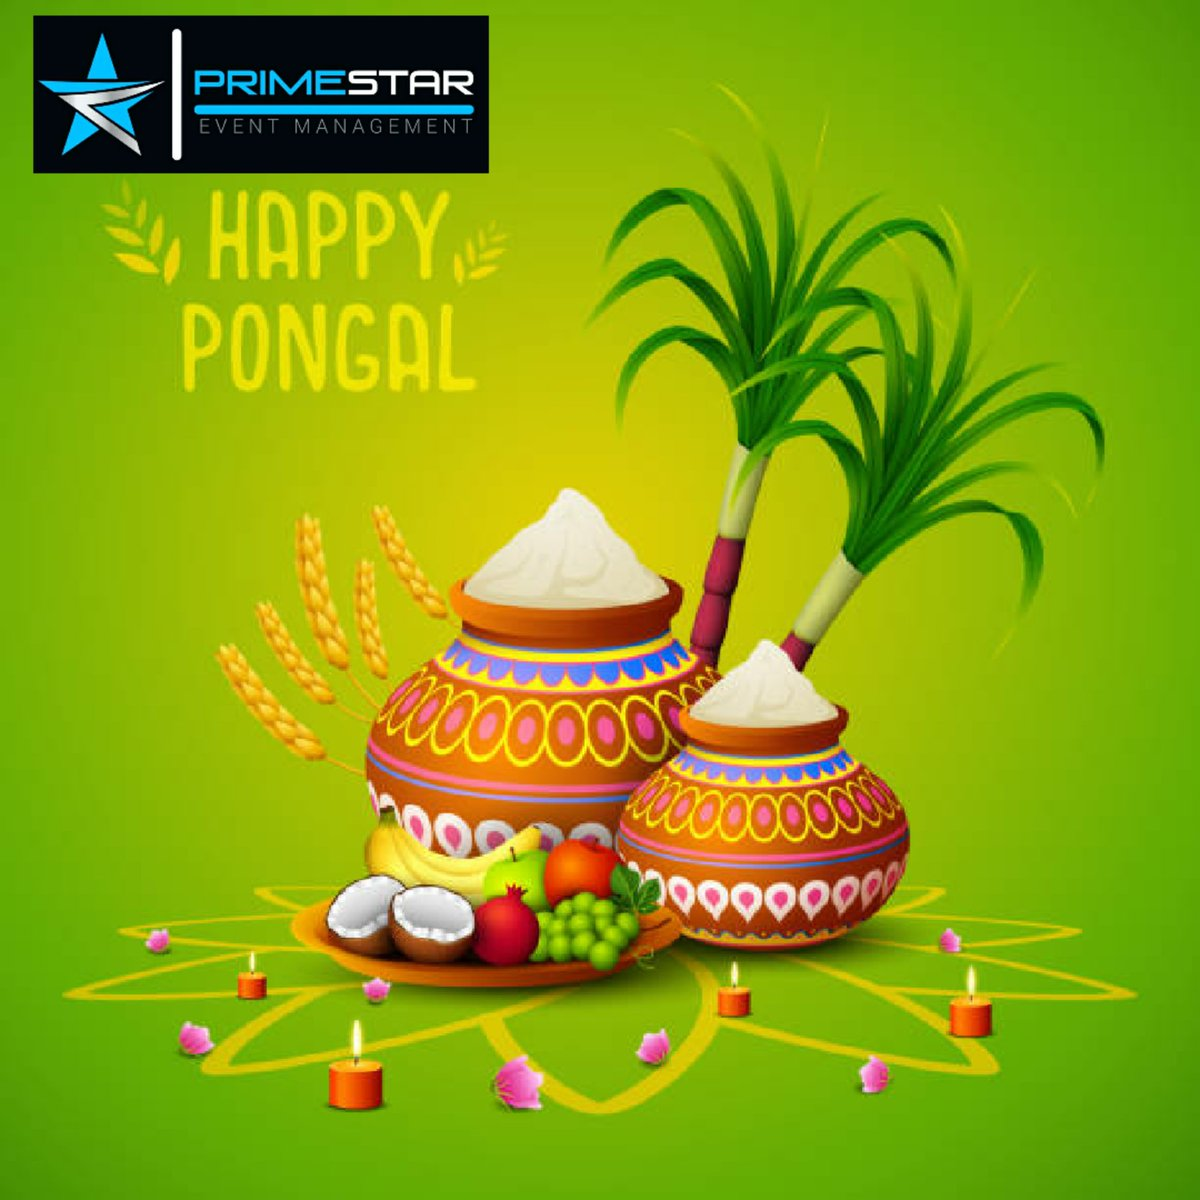 Happy ponggal  May everyone's life filled with happy and prosperity..   Be safe.   #primestareventmanagement #primestar #eventmanagement #ponggal #staysafe #stayathome #covid19 #newyear #letsbegin #letsdothis